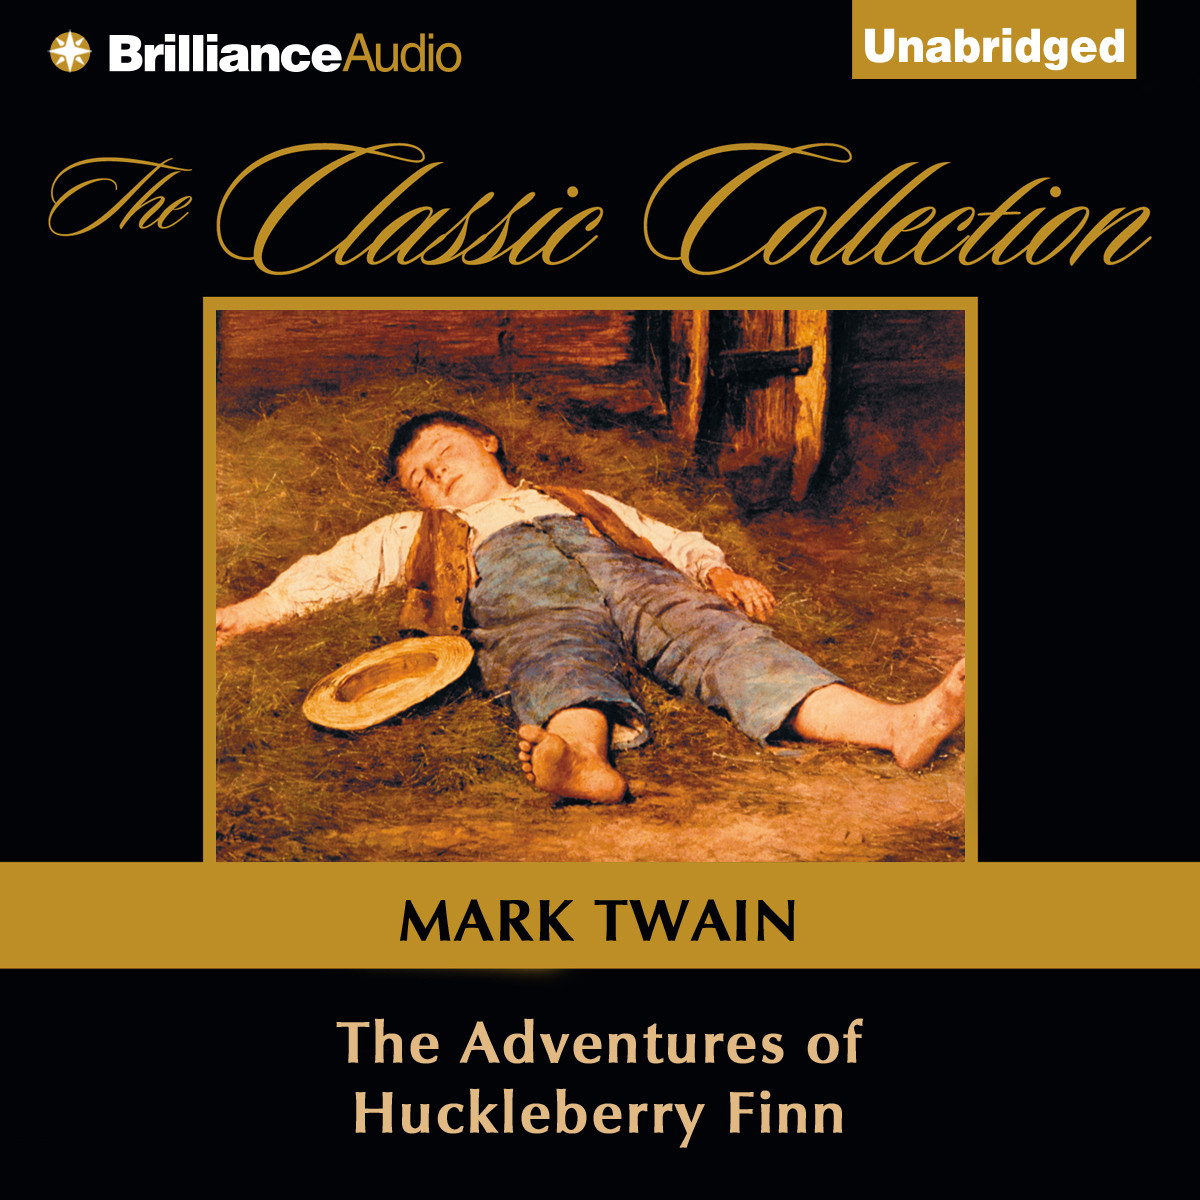 huckleberry finn essay on freedom Essays and criticism on mark twain's the adventures of huckleberry finn - critical essays sample essay outlines c jim wants to go north to earn his freedom 1.